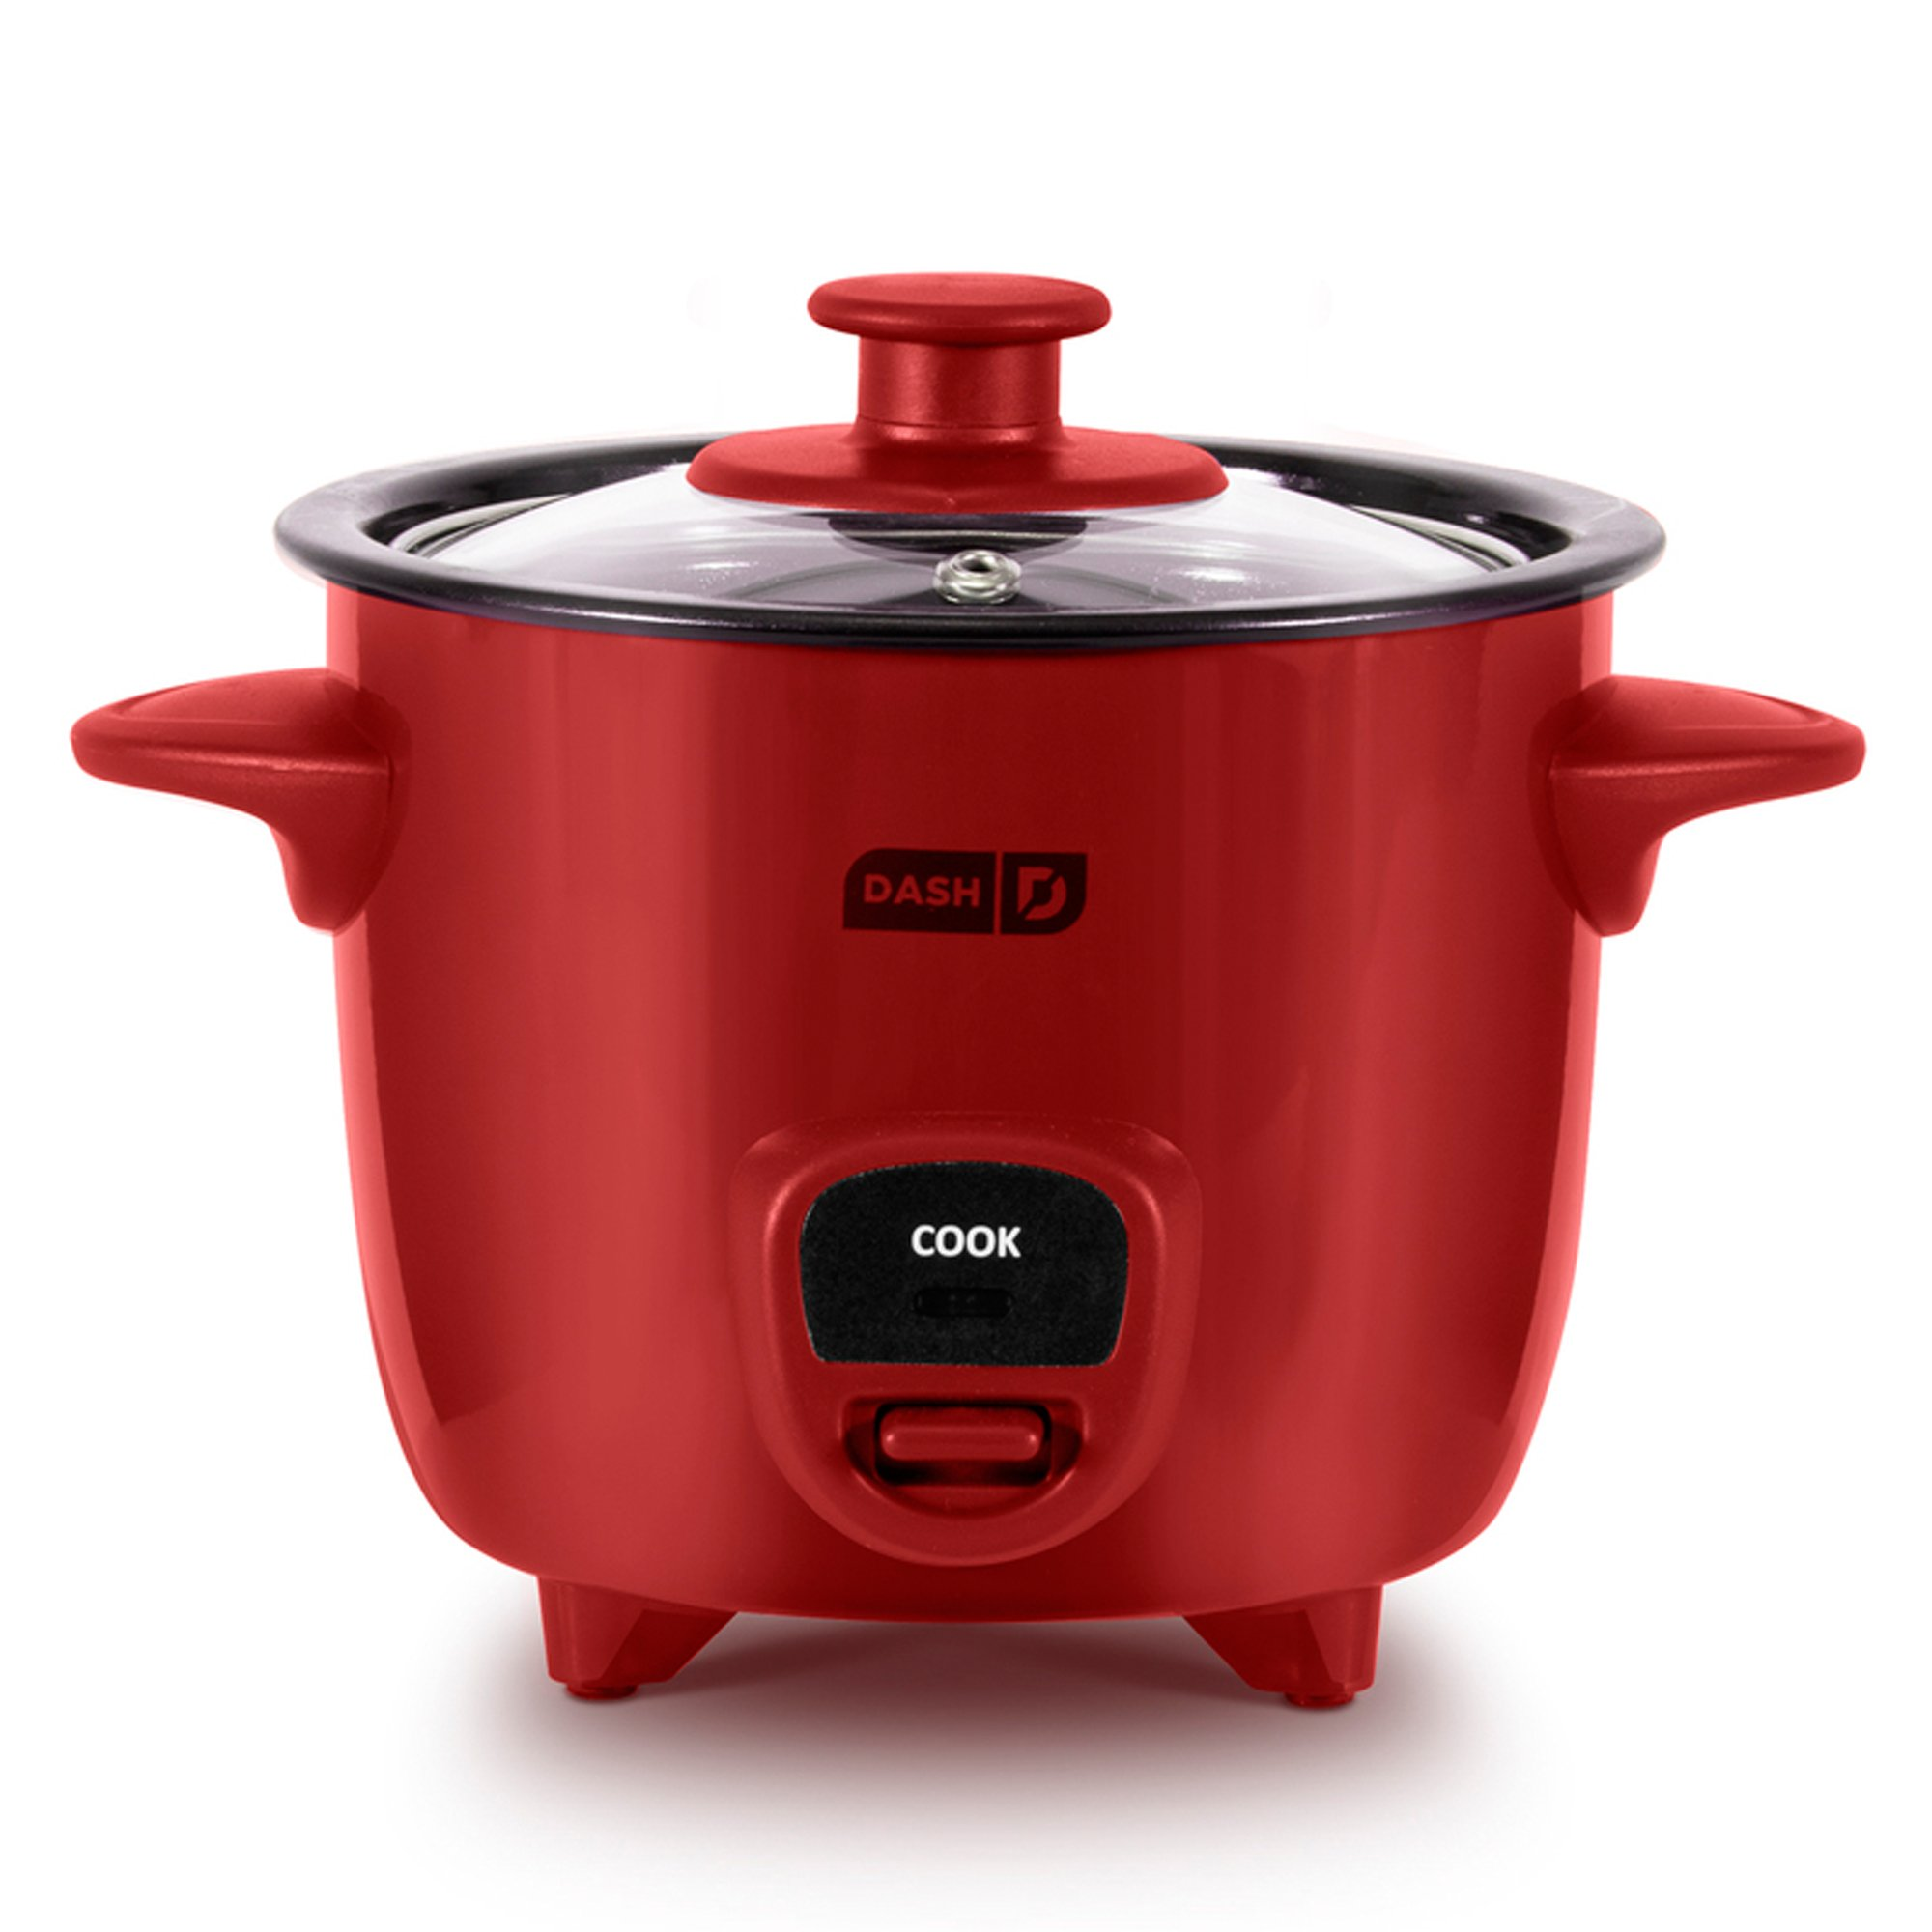 Dash DRCM100XXRD04 Rice Cooker, Red